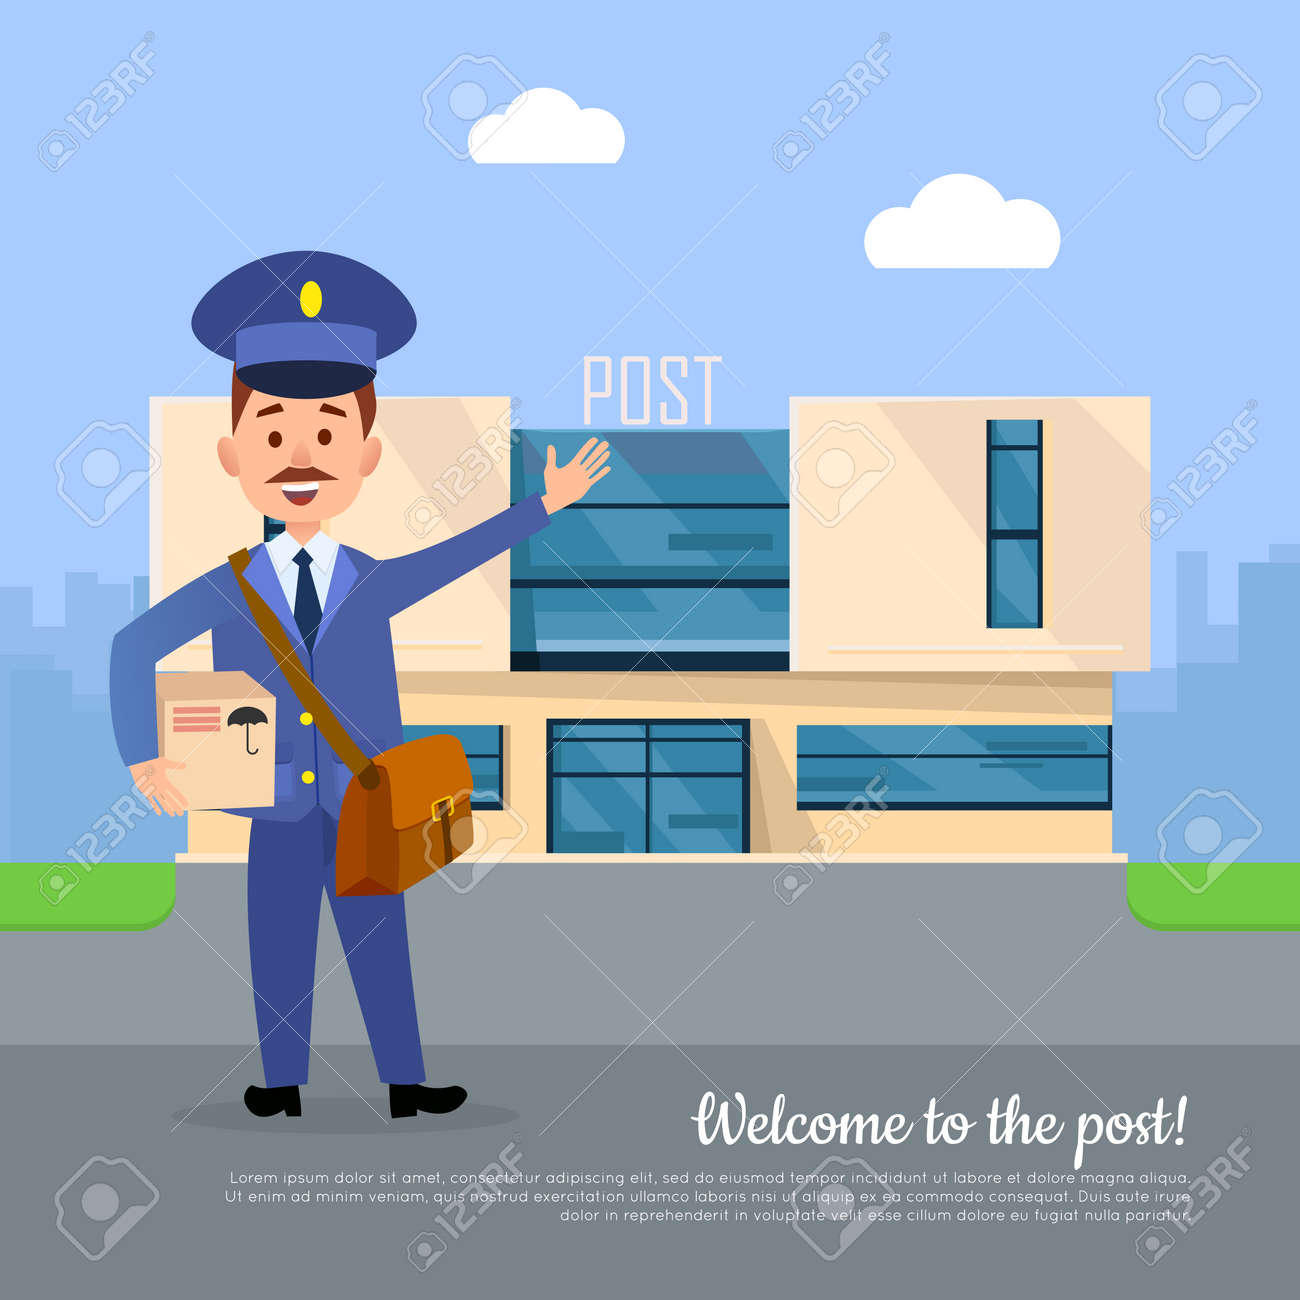 Welcome To The Post Web Banner Postman Pointing On The Post